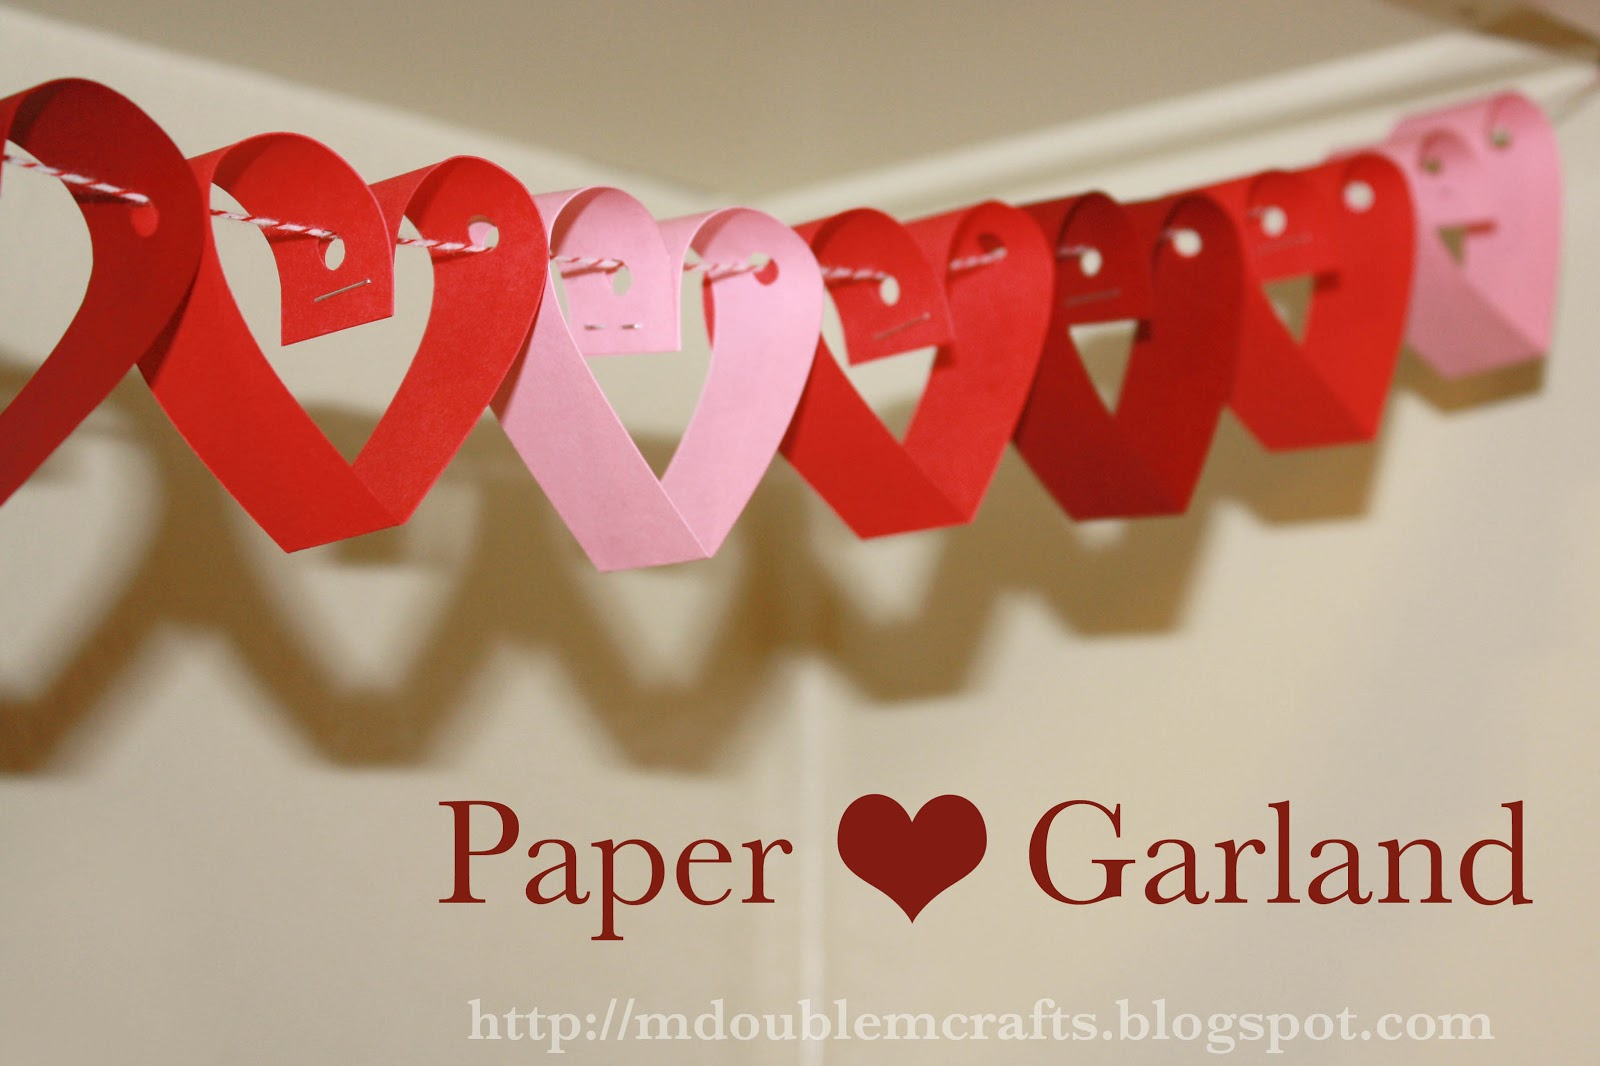 M: Gleam aposN Flex Heart Garland (red) Party Accessory (1)